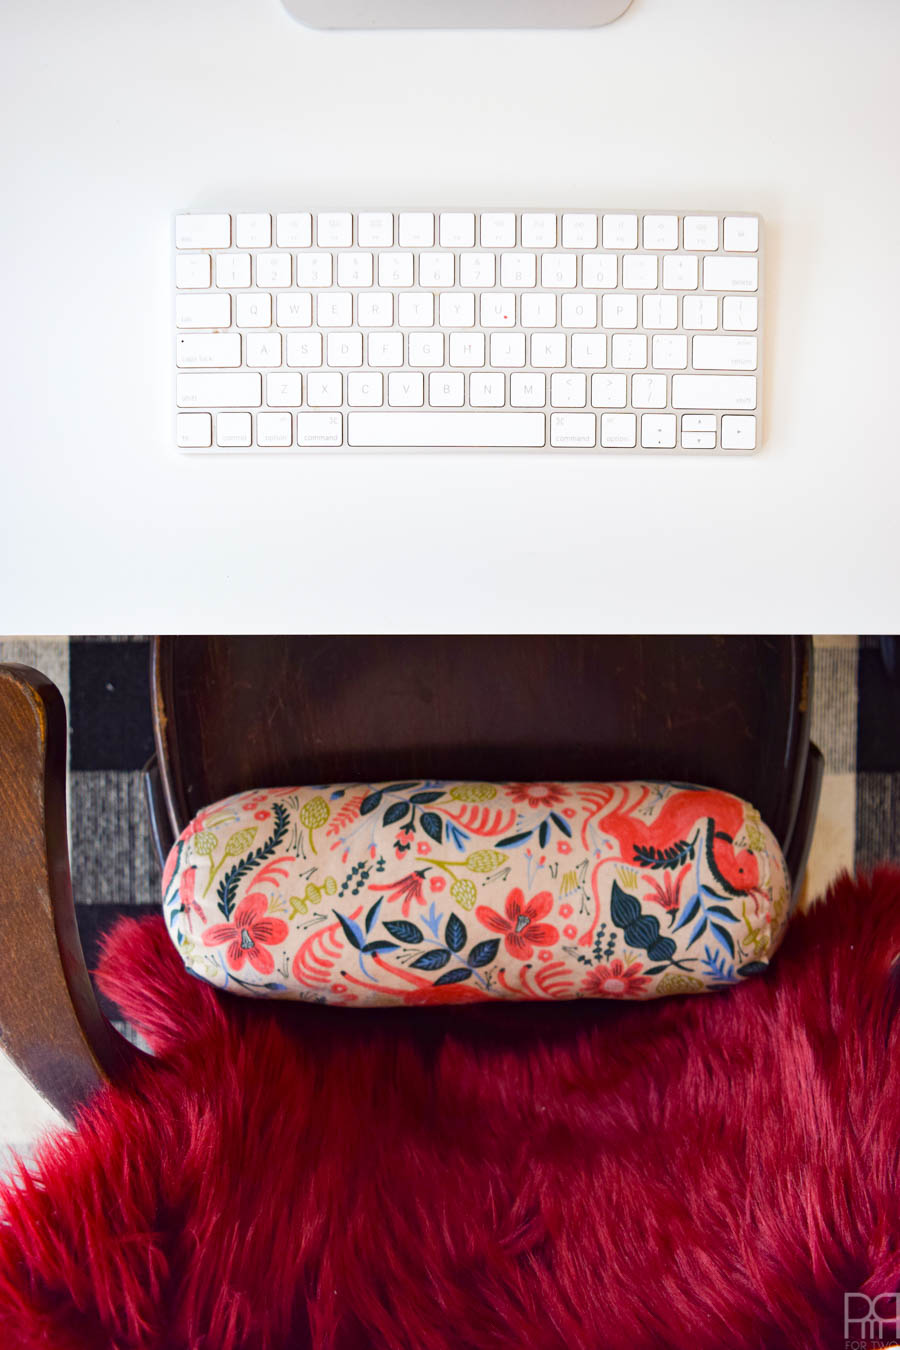 An IKEA RAST Desk Hack that creates a custom desk for just under 150$. Using Minwax's line of wood stains you can get a custom finish on the wood too. It's the perfect work desk and comes with lots of storage. #minwax #ikeahack #ikearast